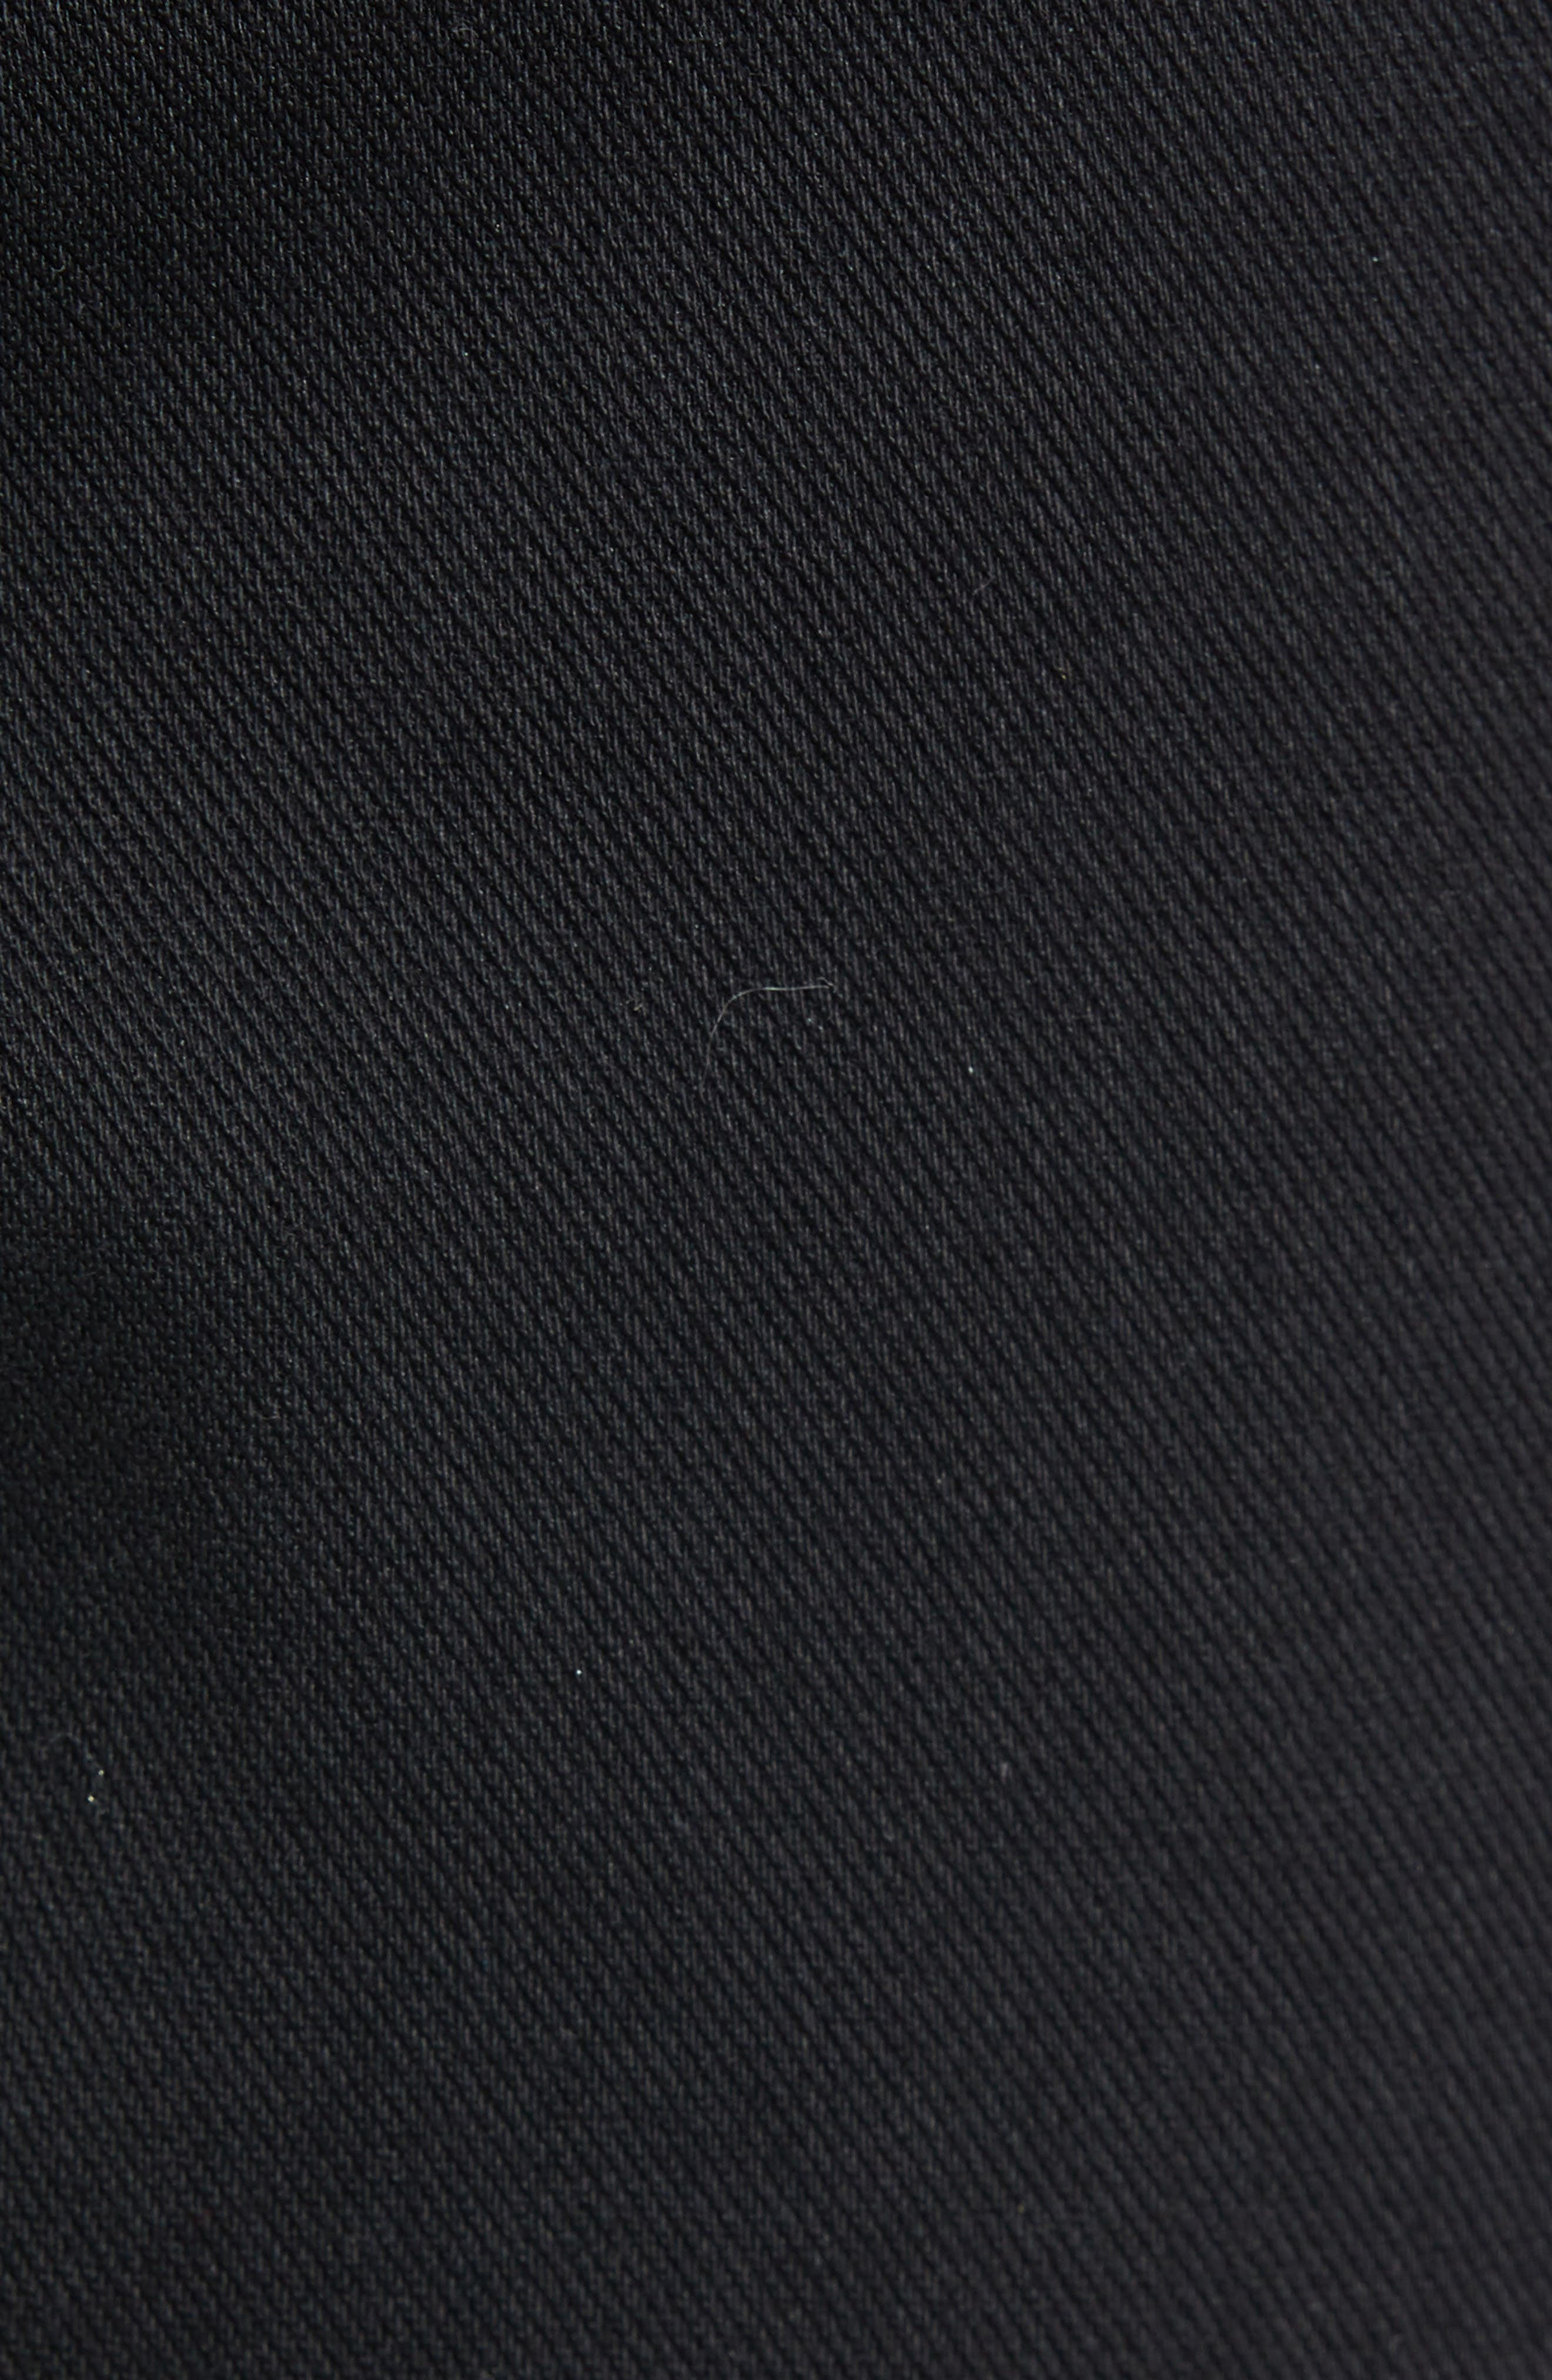 512<sup>™</sup> Slouchy Skinny Fit Twill Pants,                             Alternate thumbnail 5, color,                             BLACK WONDER KNIT TWILL